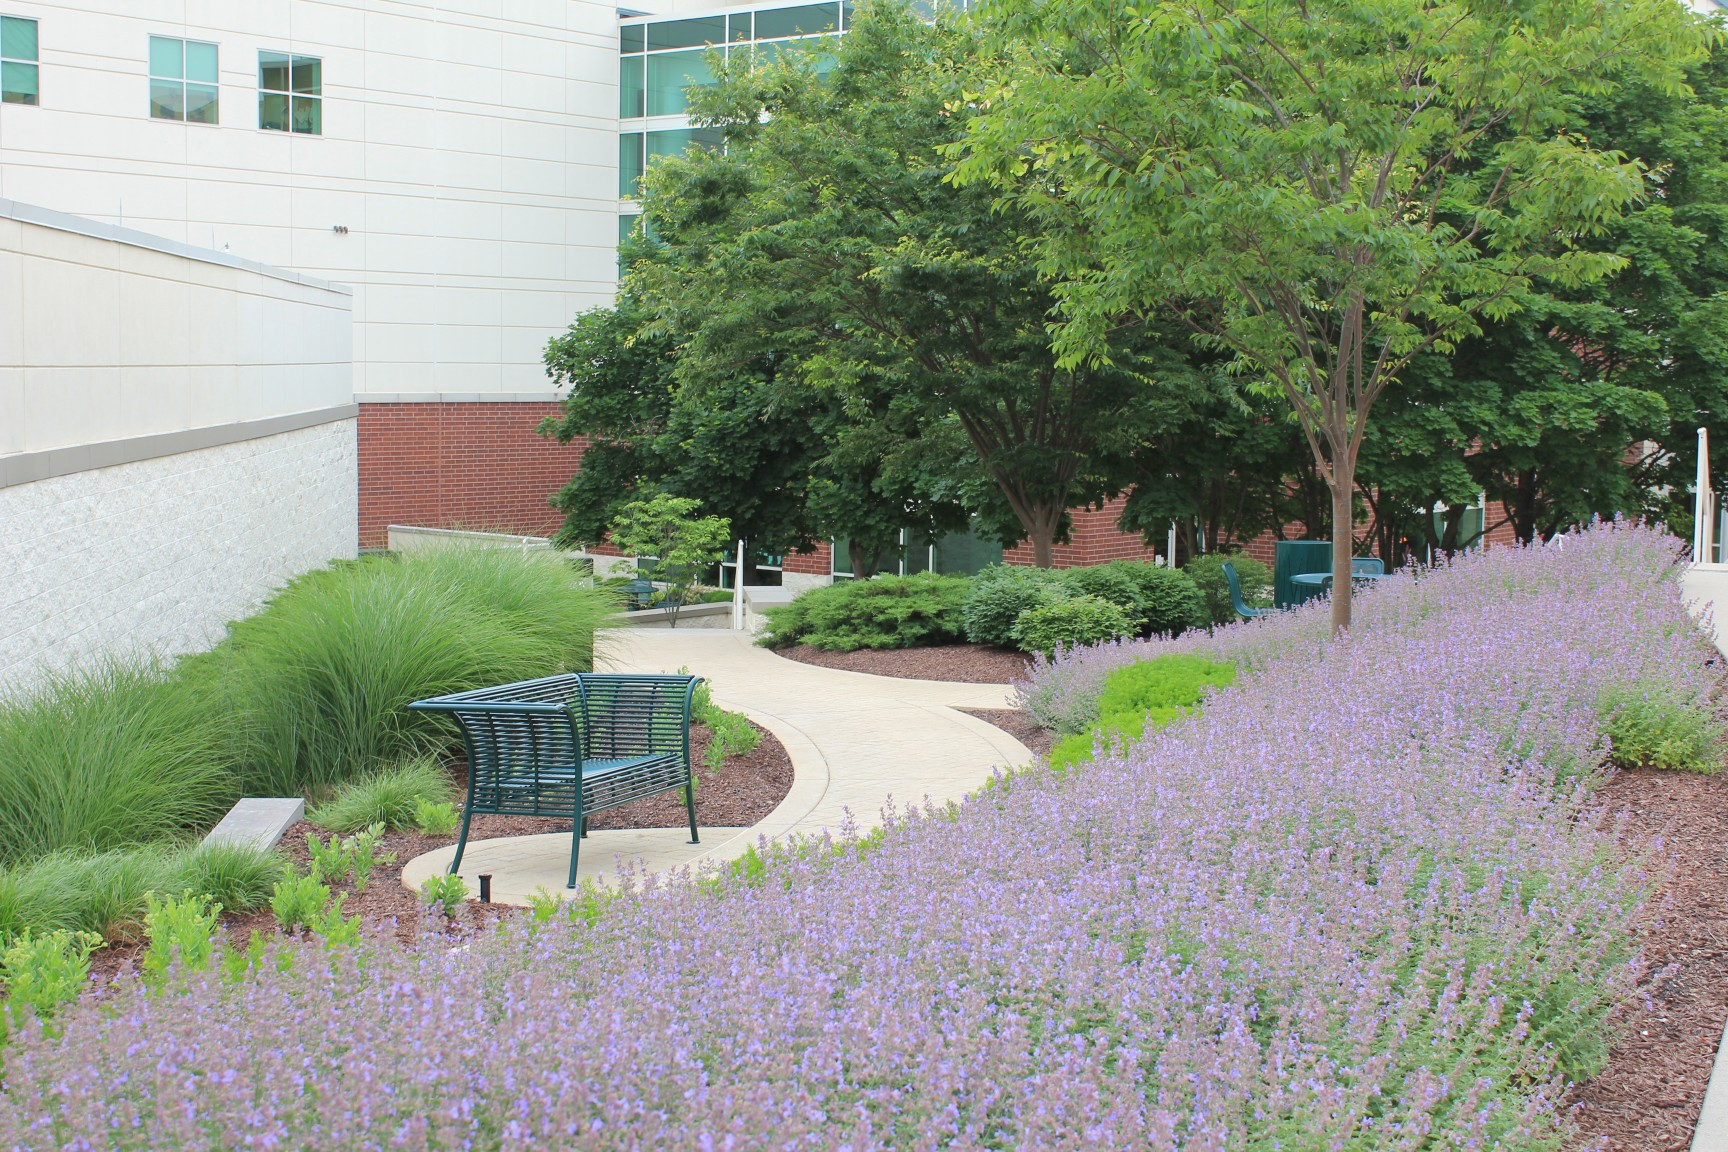 Landscape Maintenance services for hospitals and healthcare facilities.